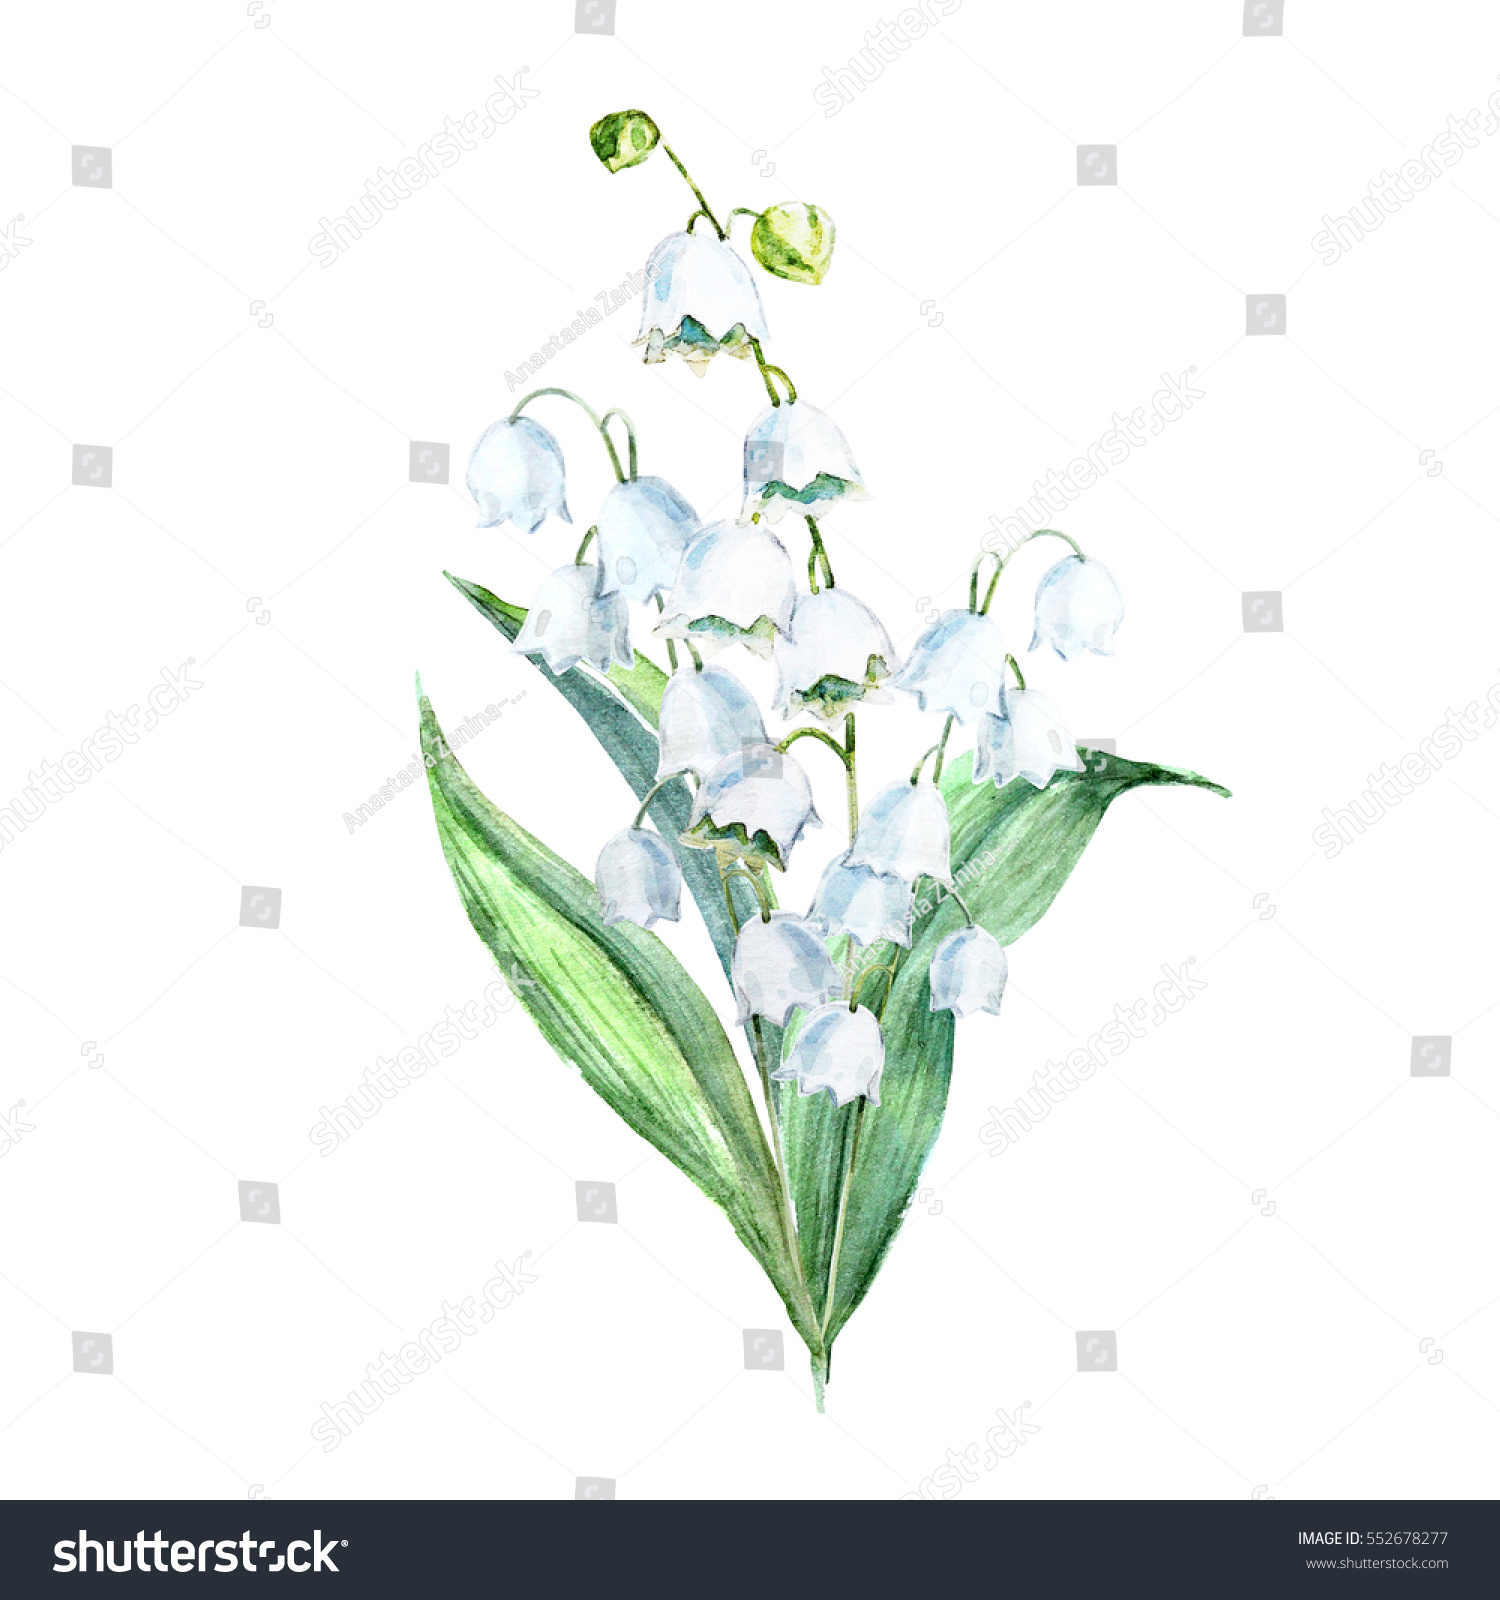 Watercolor illustration flowers lily valley sweet stock illustration watercolor illustration of flowers lily of the valley sweet spring bouquet izmirmasajfo